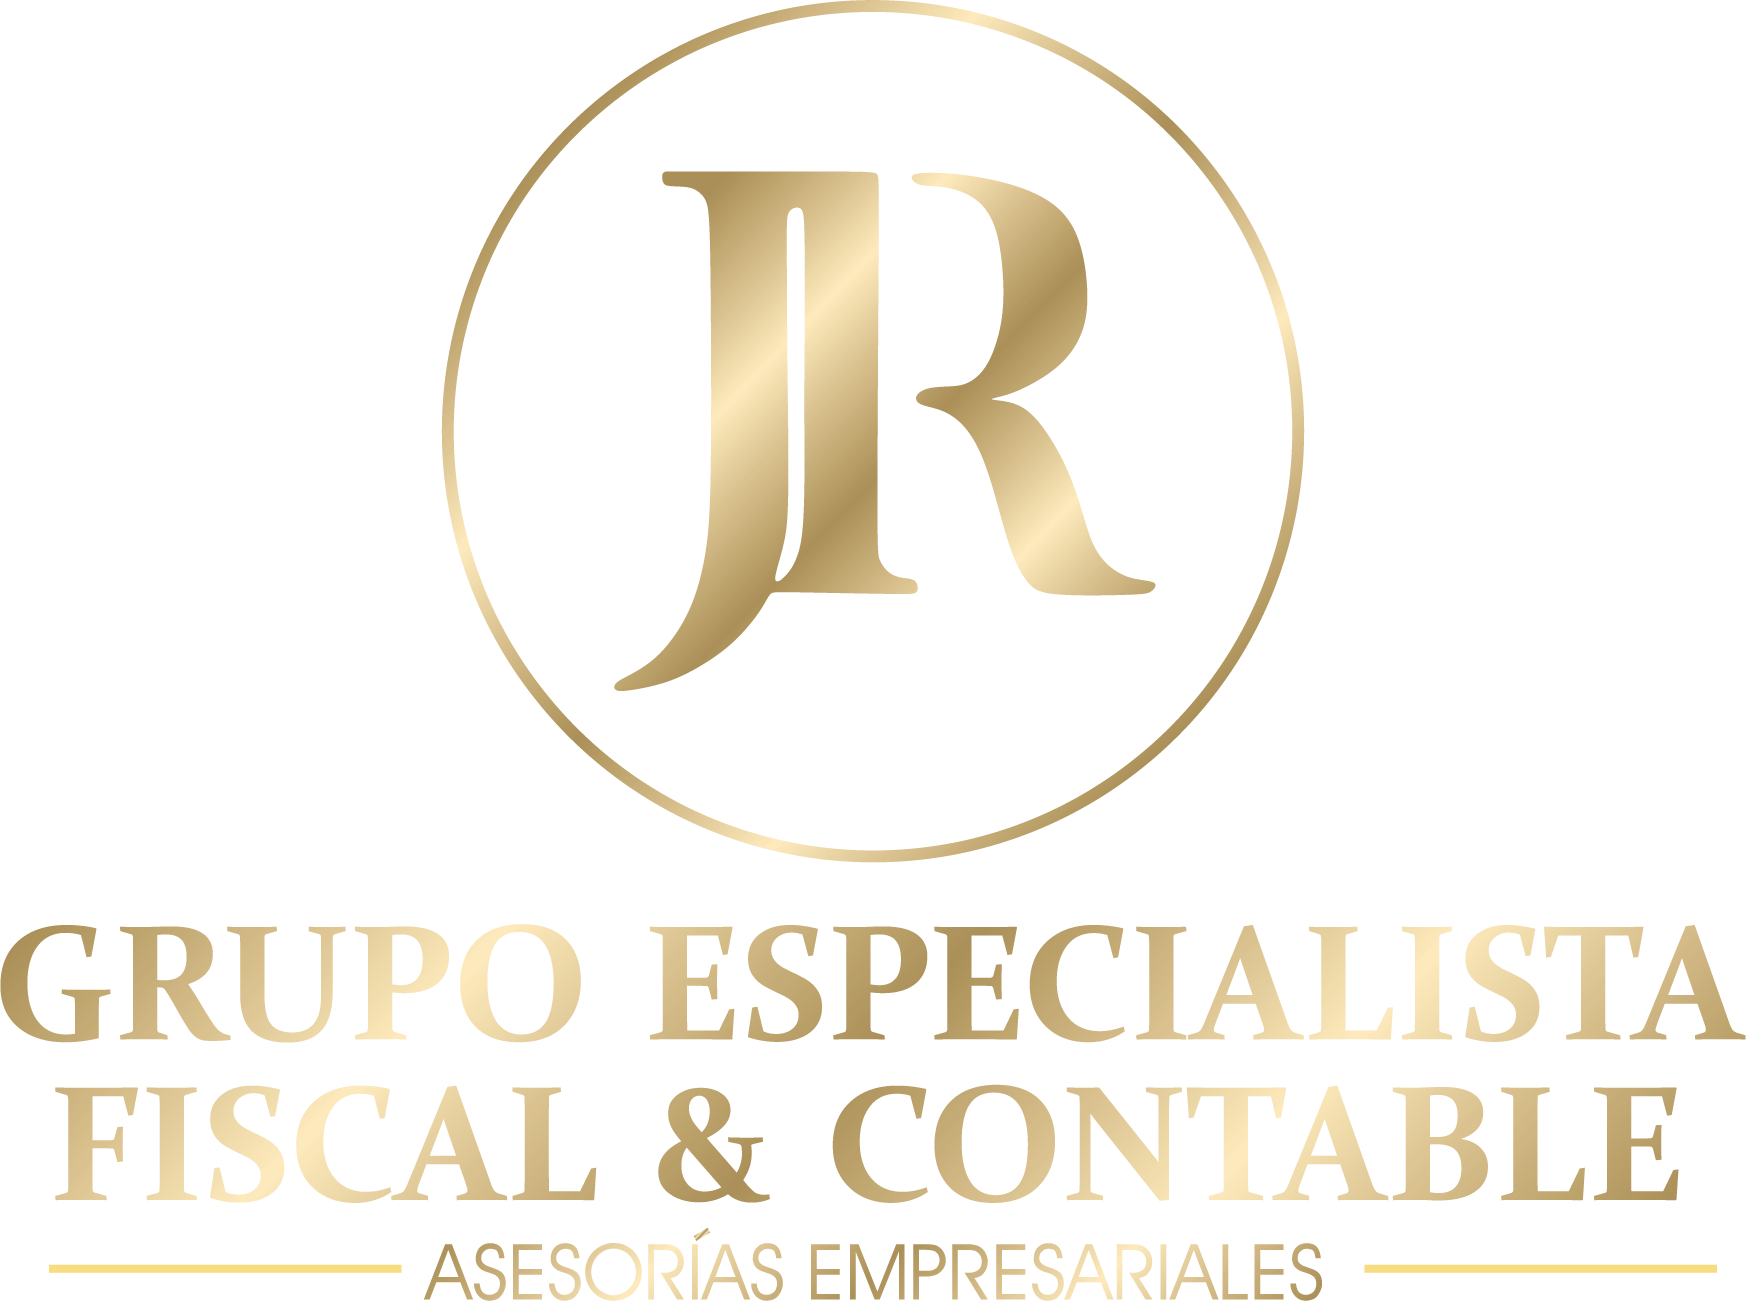 Grupo Especialista Fiscal y Contable JR